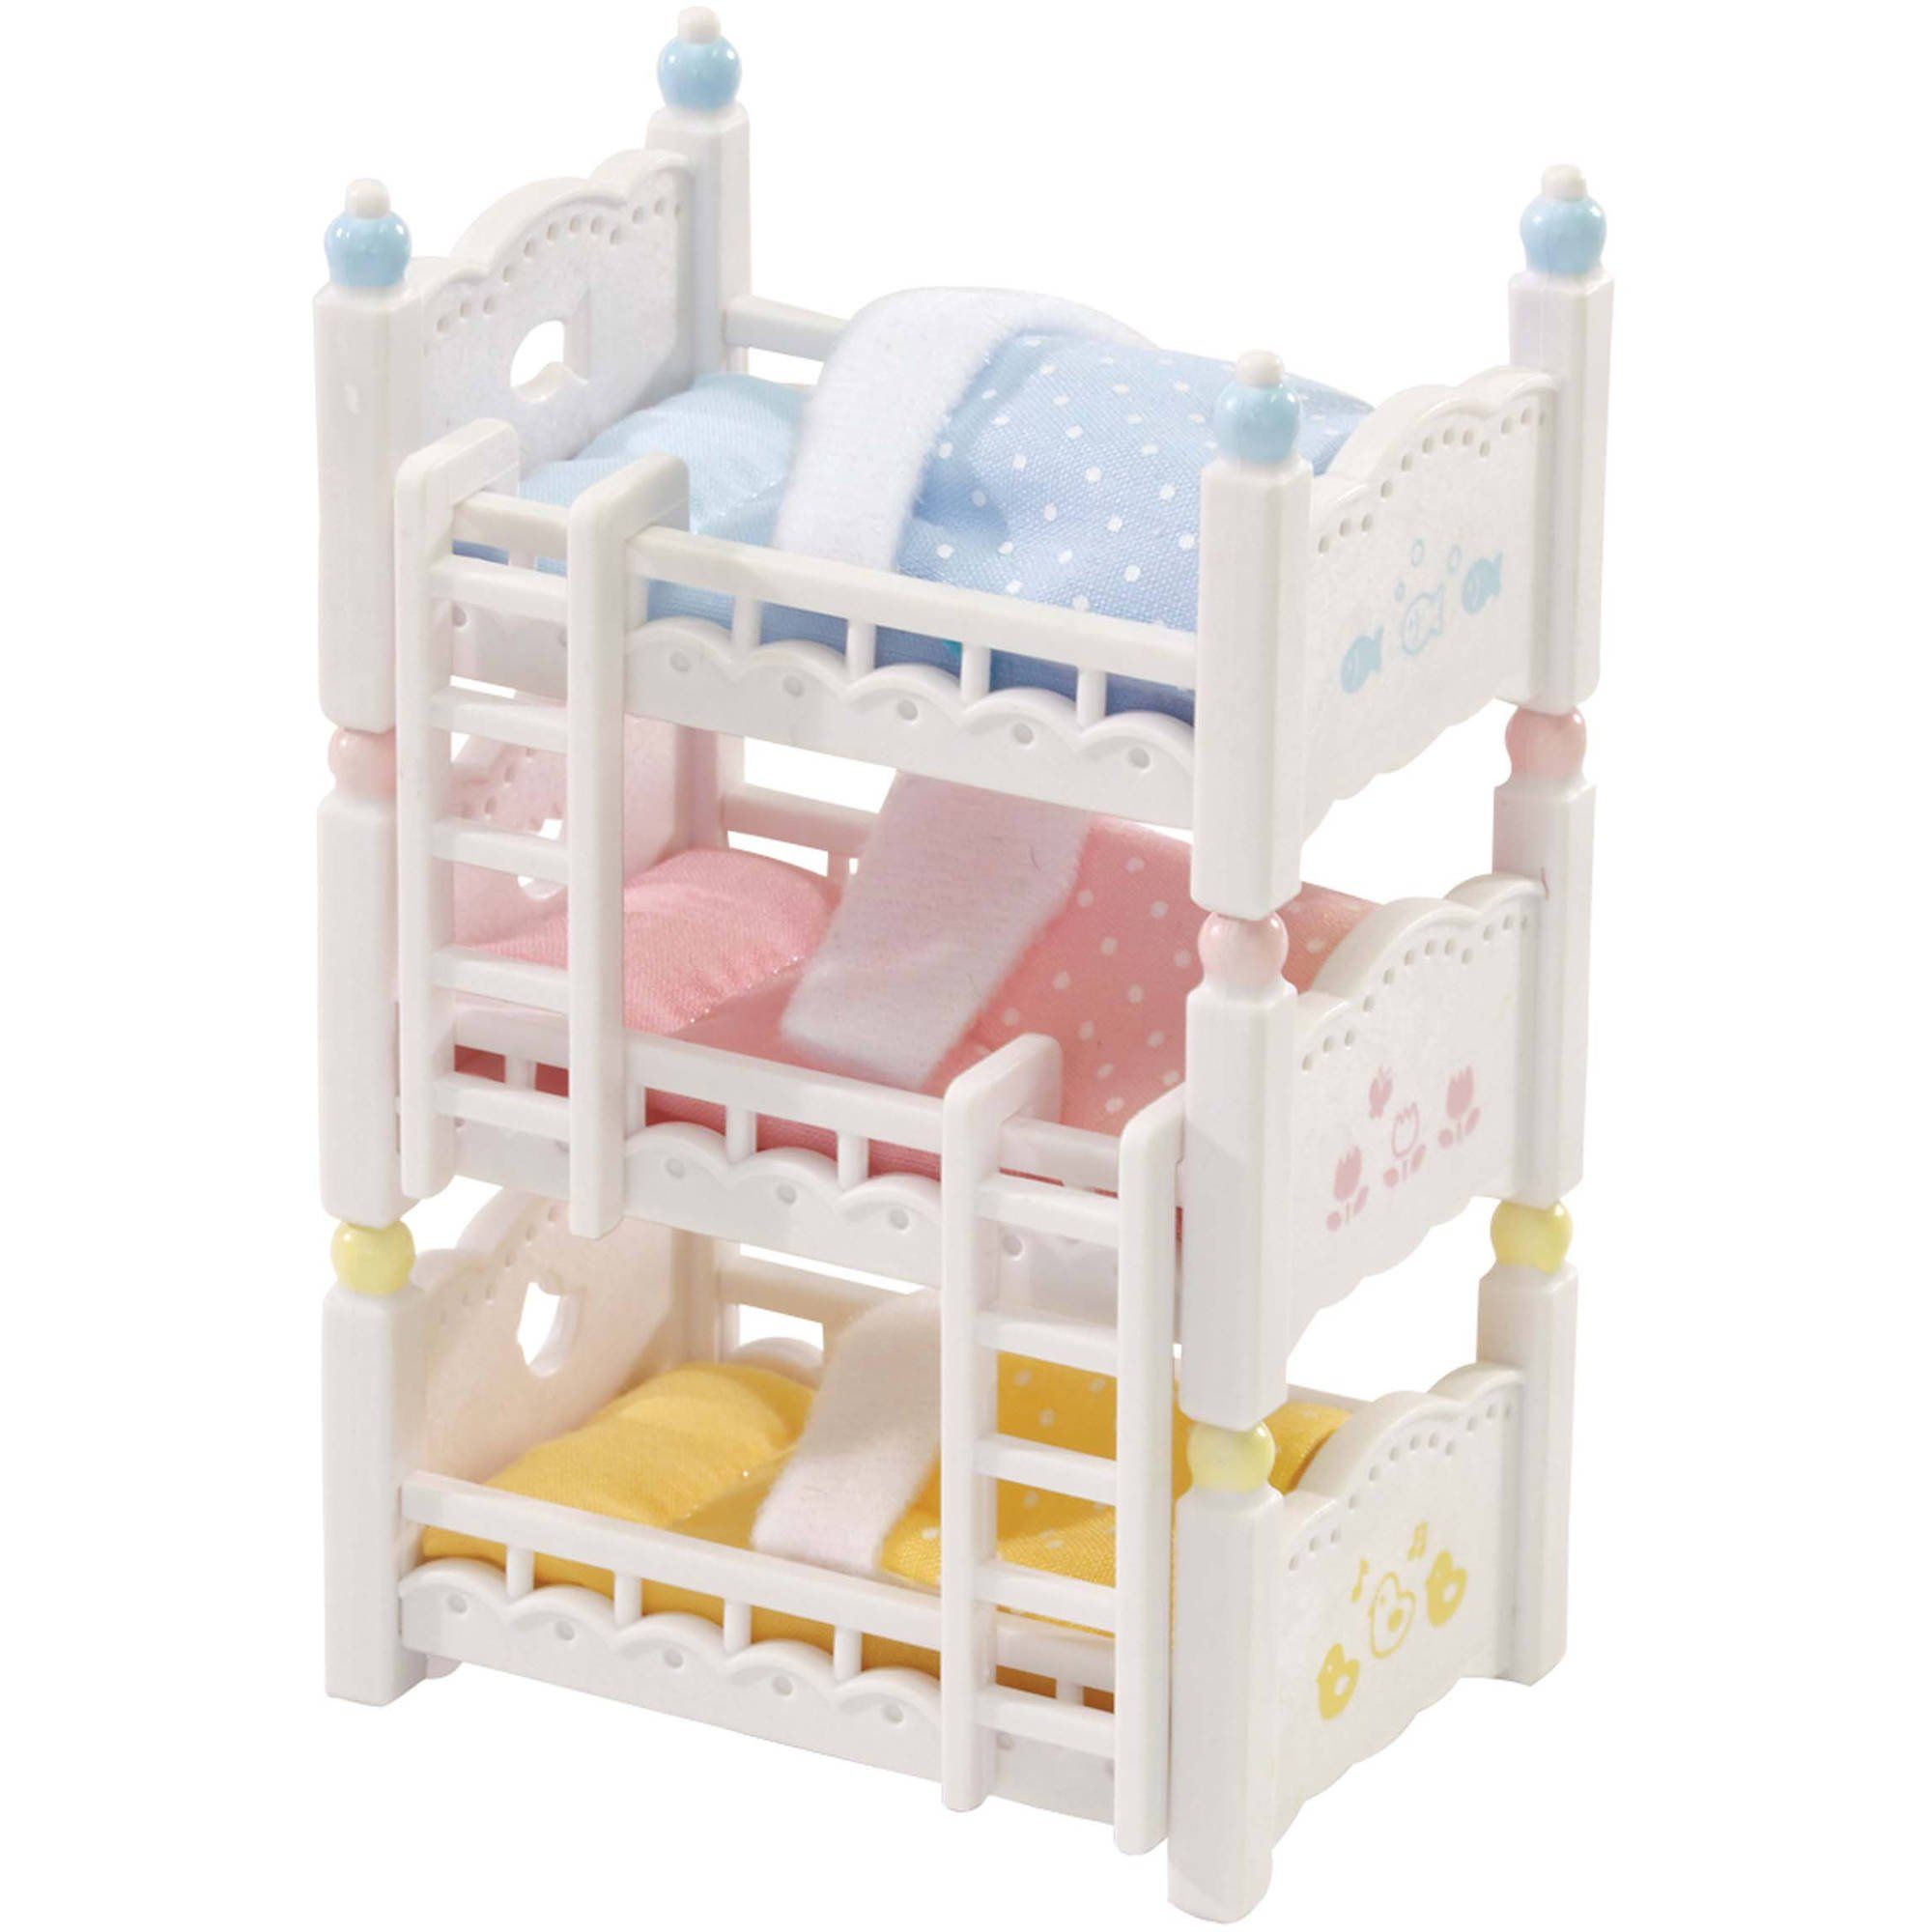 Calico Critters Triple Baby Bunk Beds in